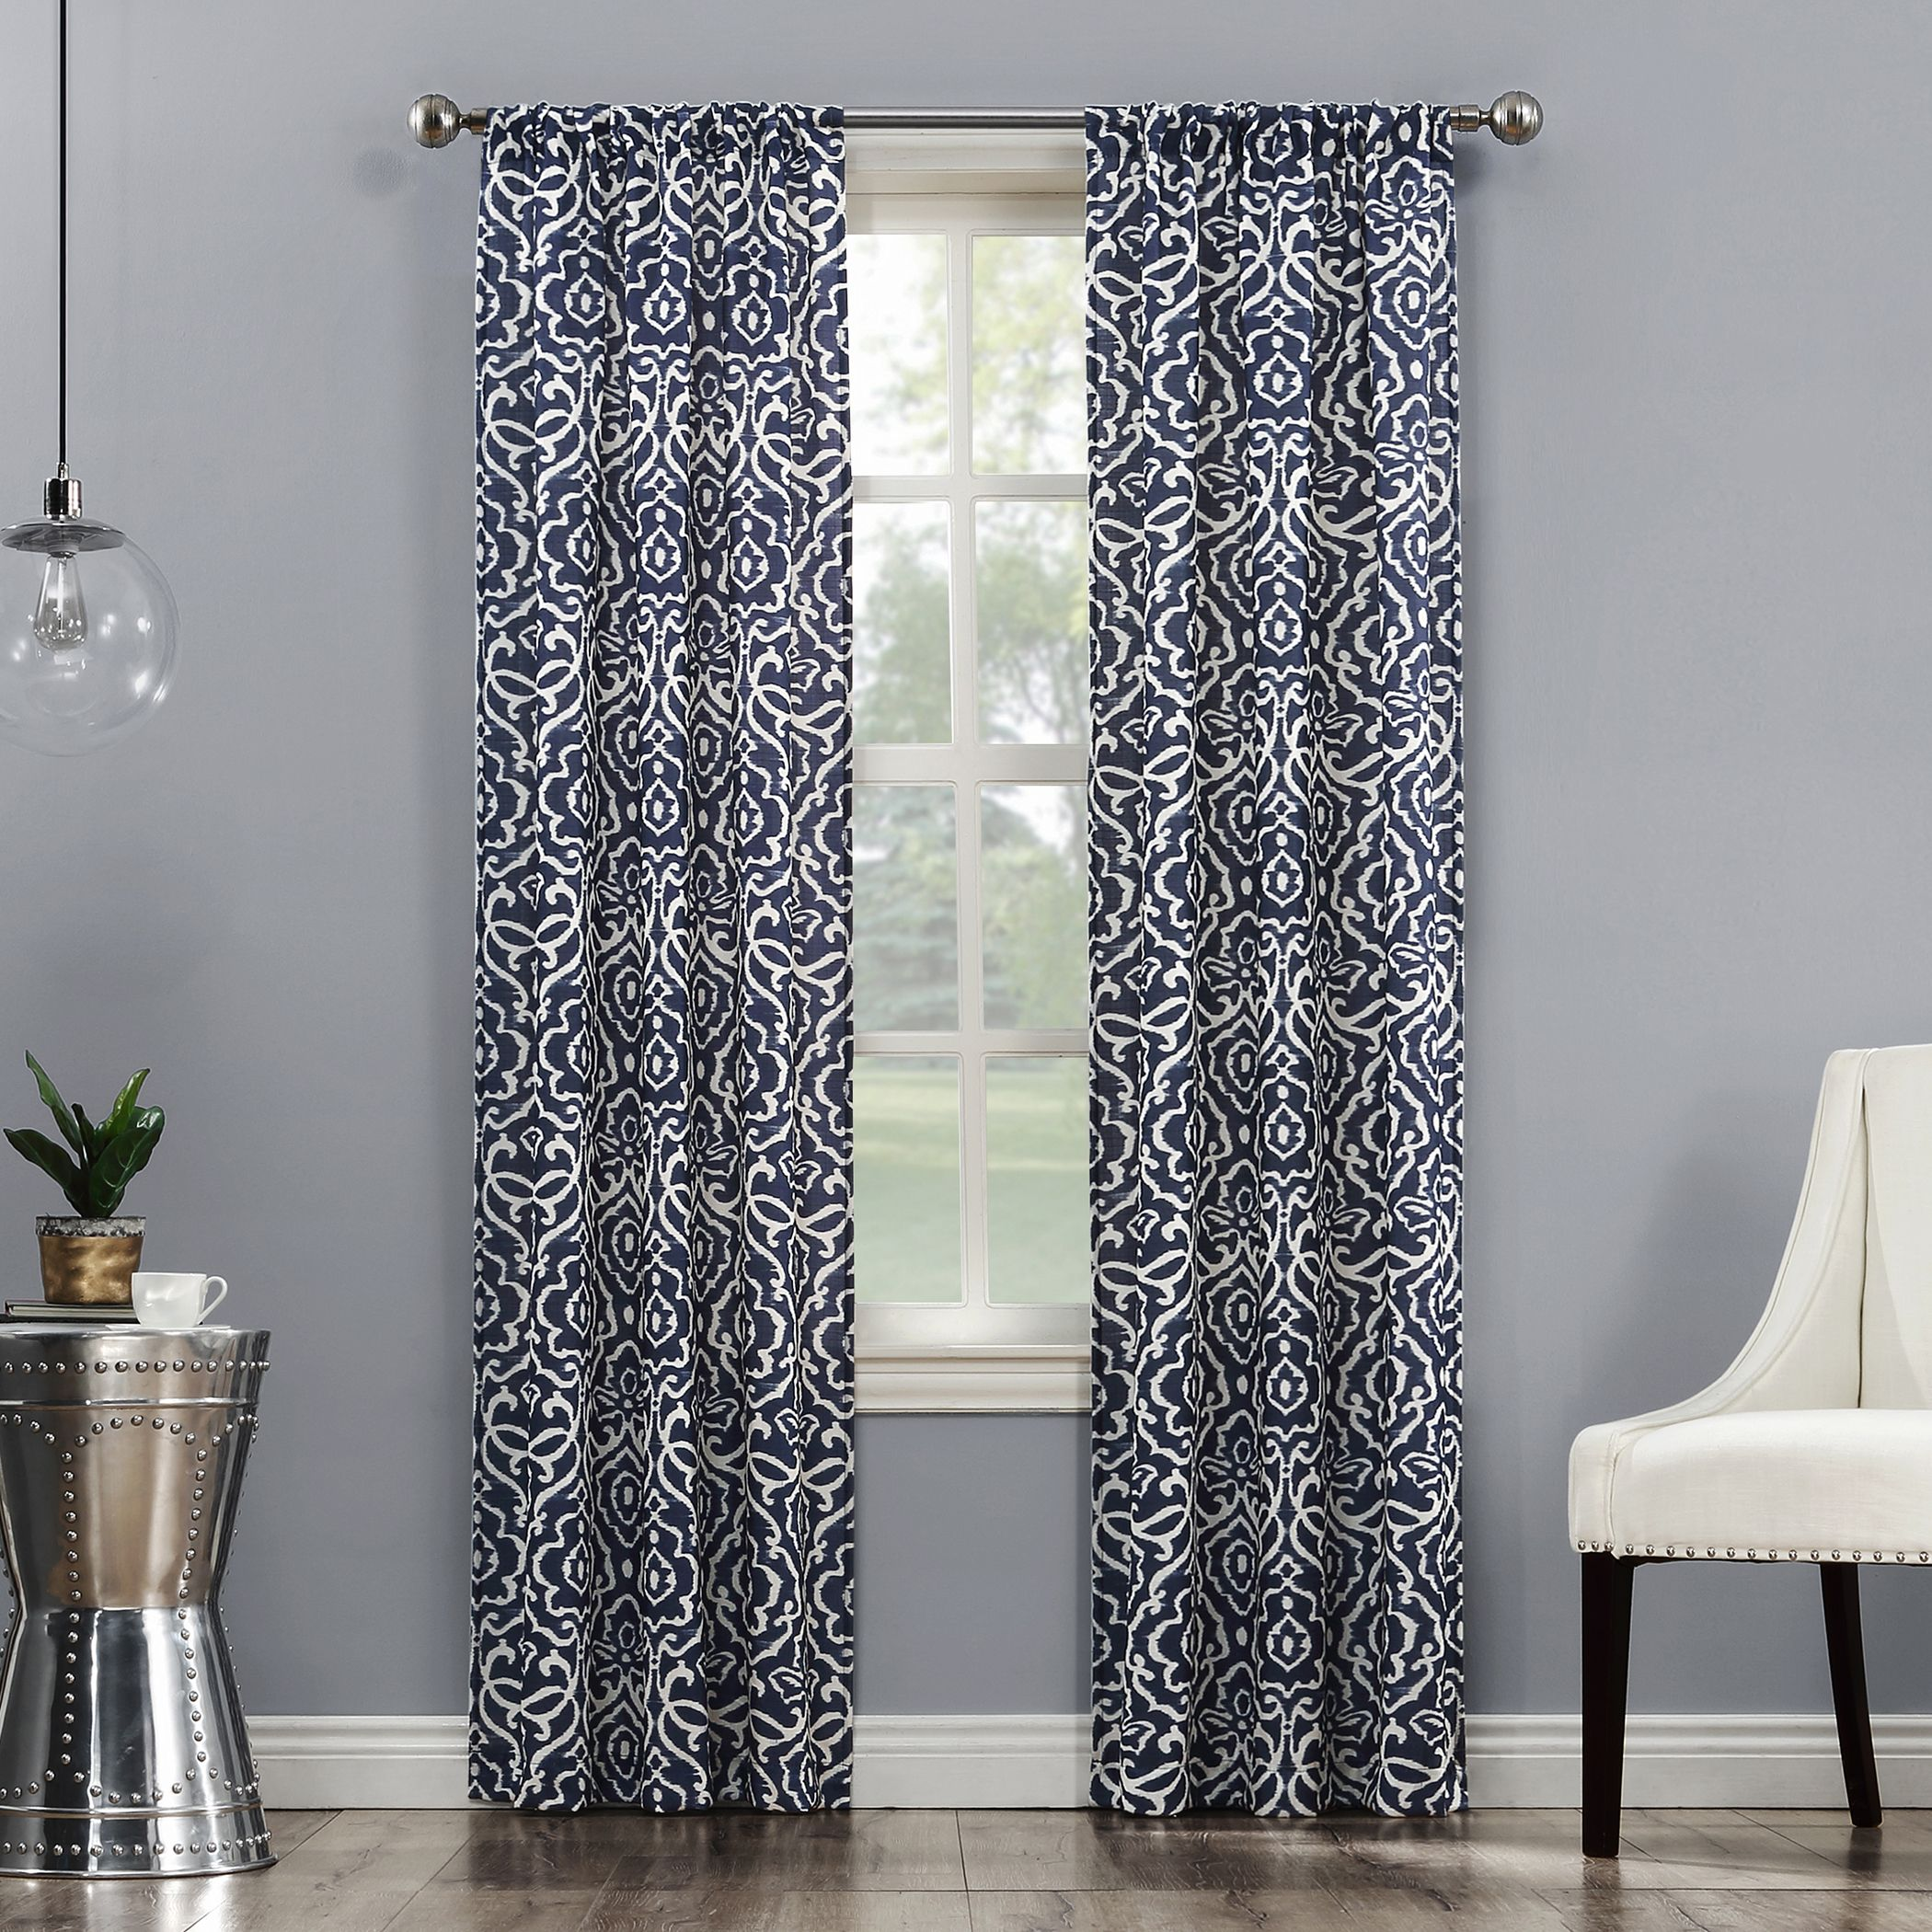 50++ Curtains for living room walmart information